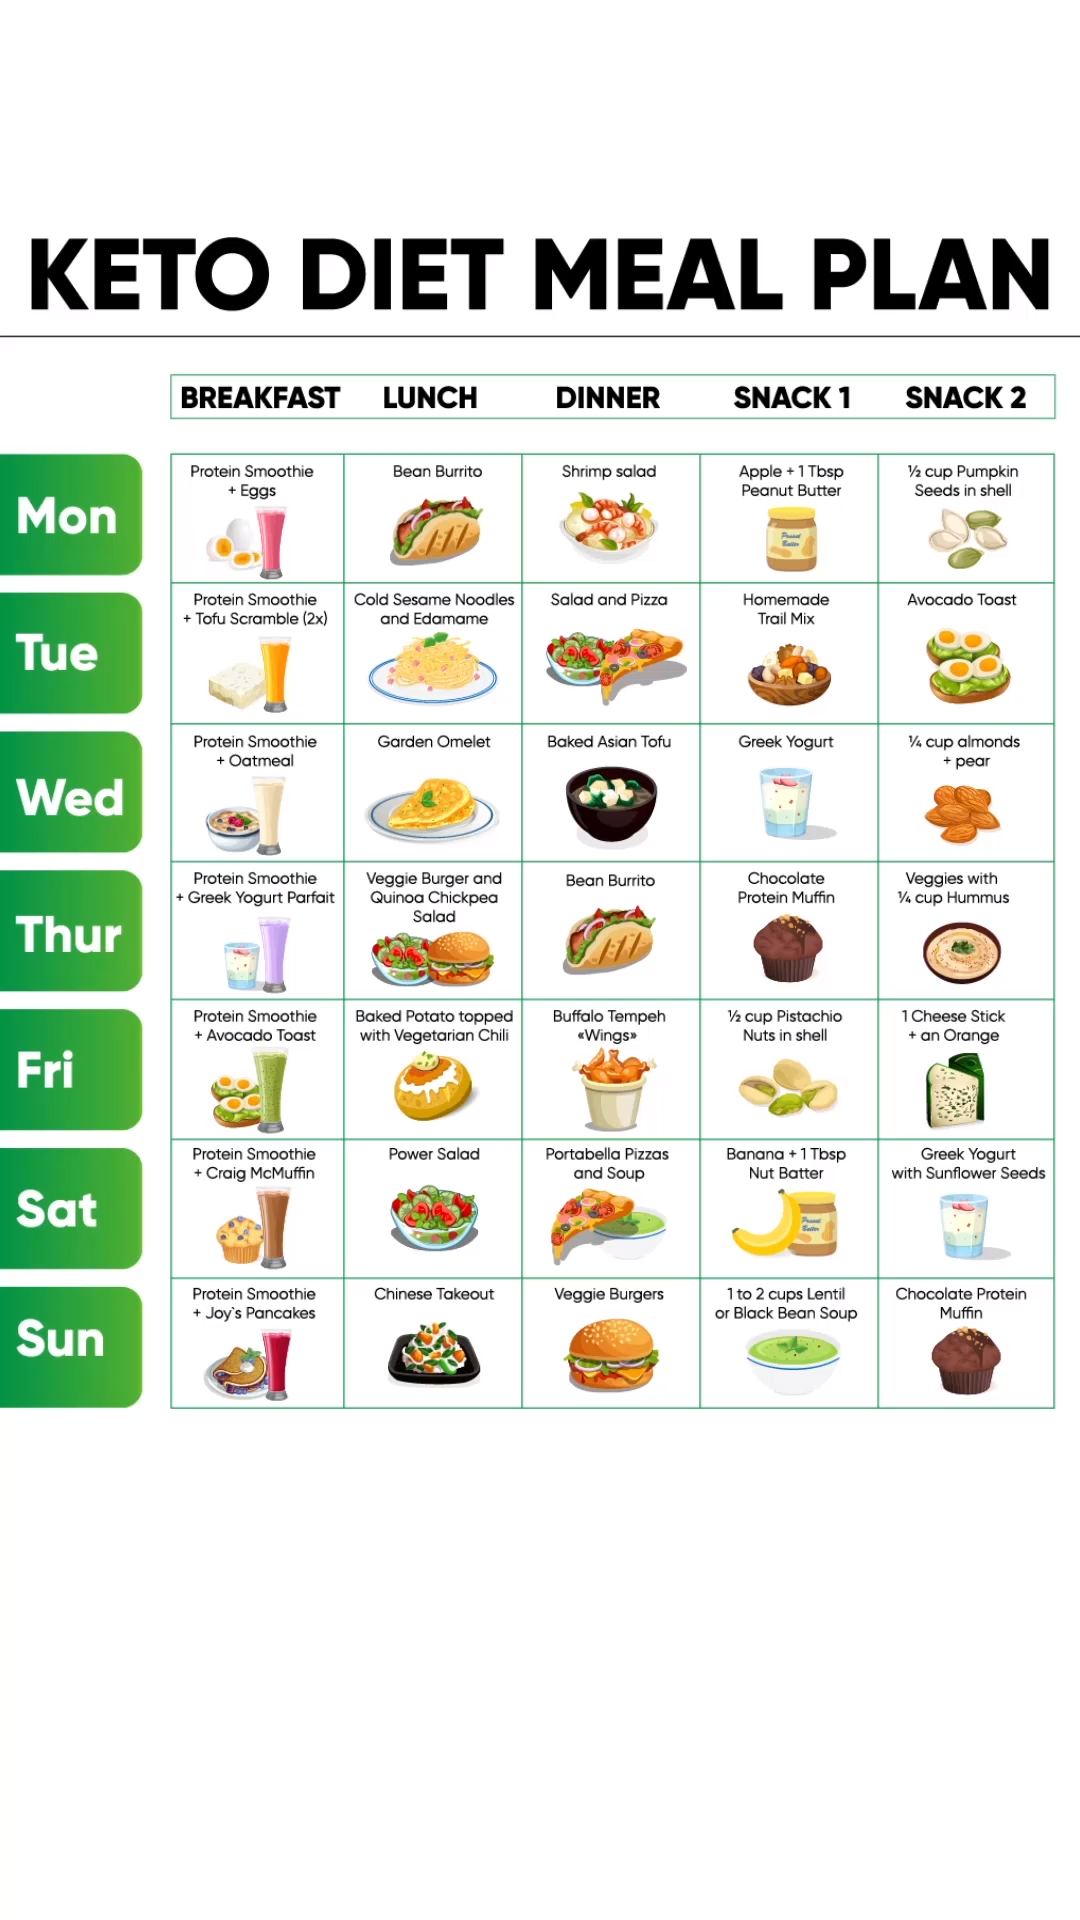 Photo of Keto diet meal plan